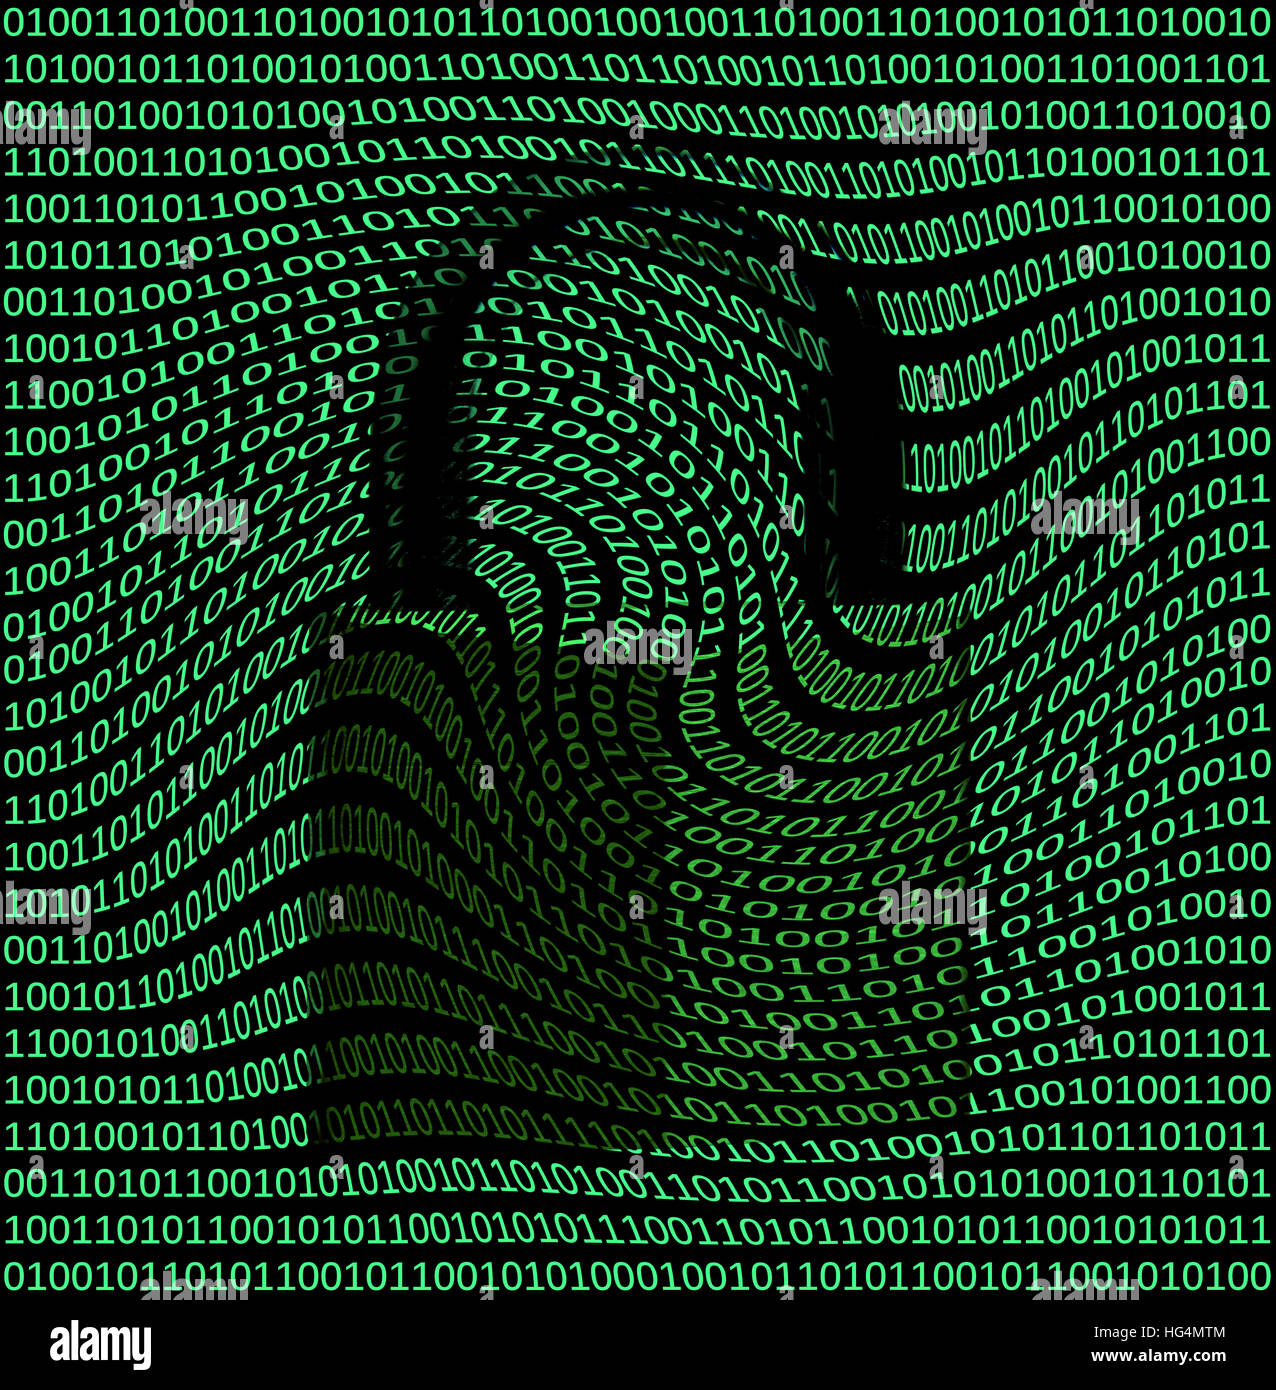 Secure Data. - Stock Image